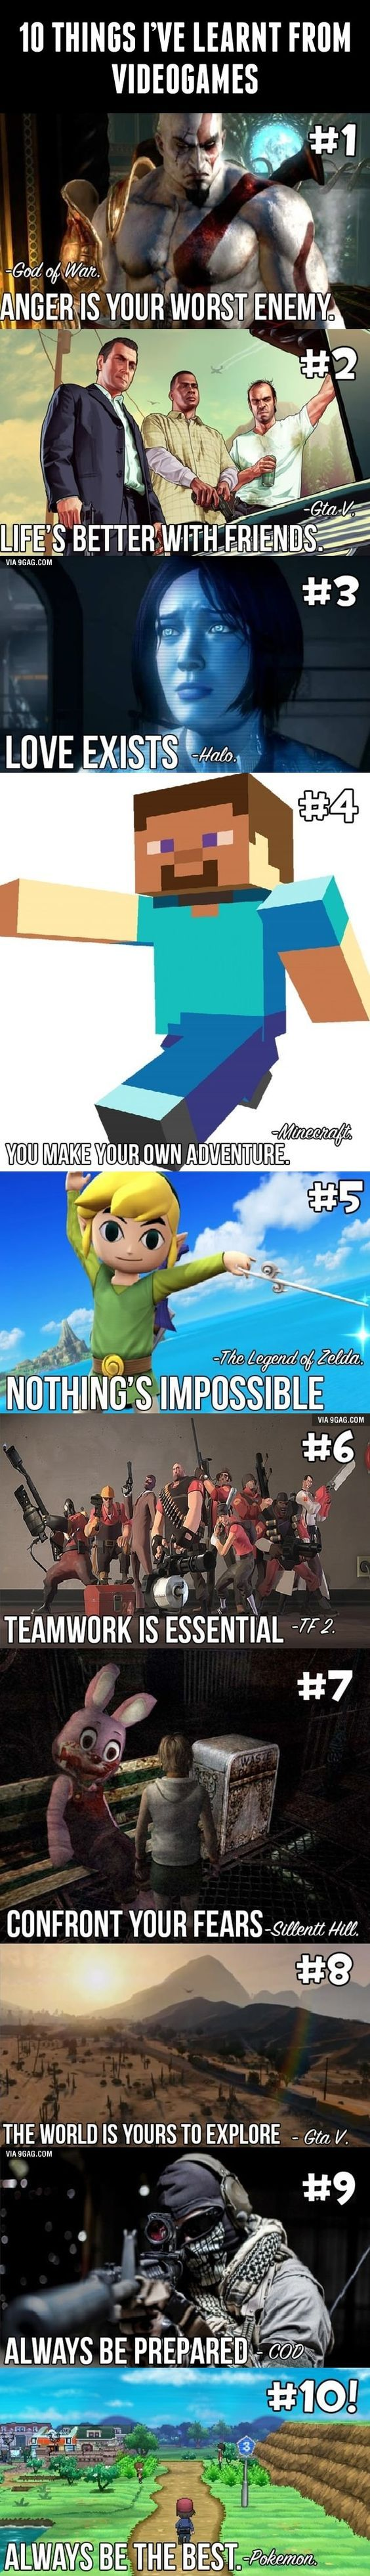 10 Things I've Learnt From Videogames :') except cod..cod is for idiots.. 2ngày